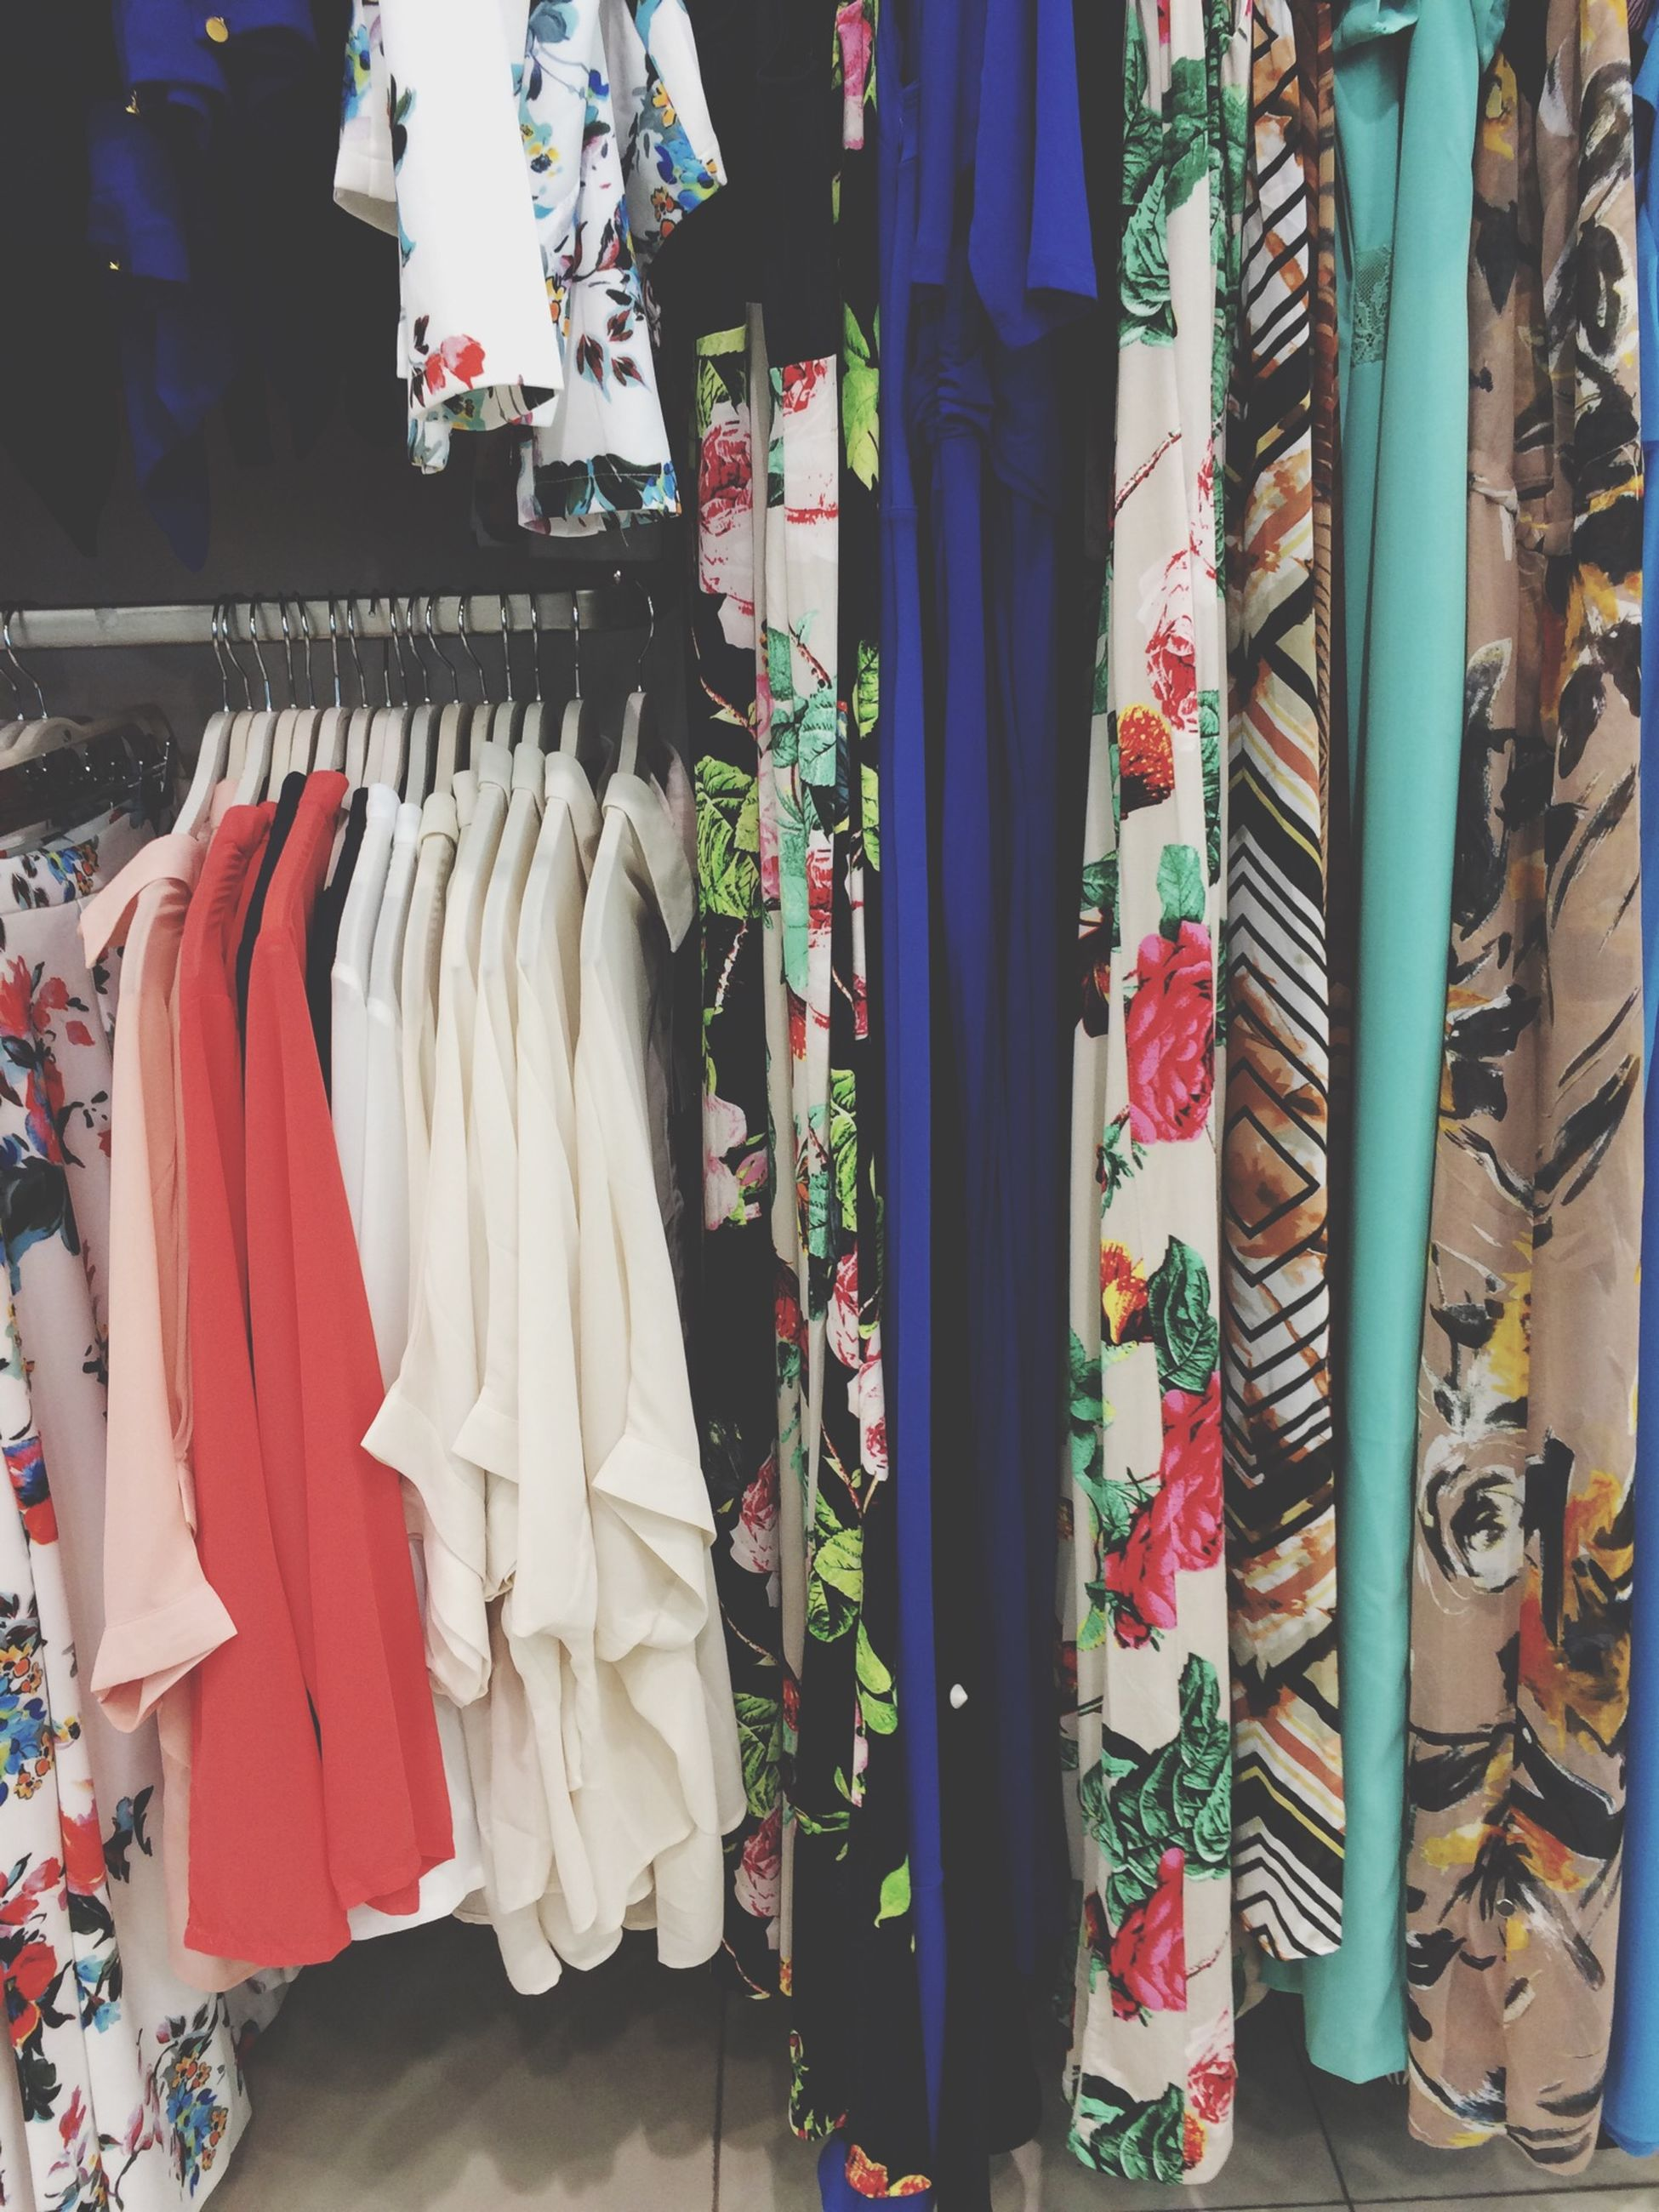 for sale, retail, variation, market, hanging, market stall, choice, clothing, abundance, multi colored, large group of objects, sale, textile, display, men, store, shopping, small business, in a row